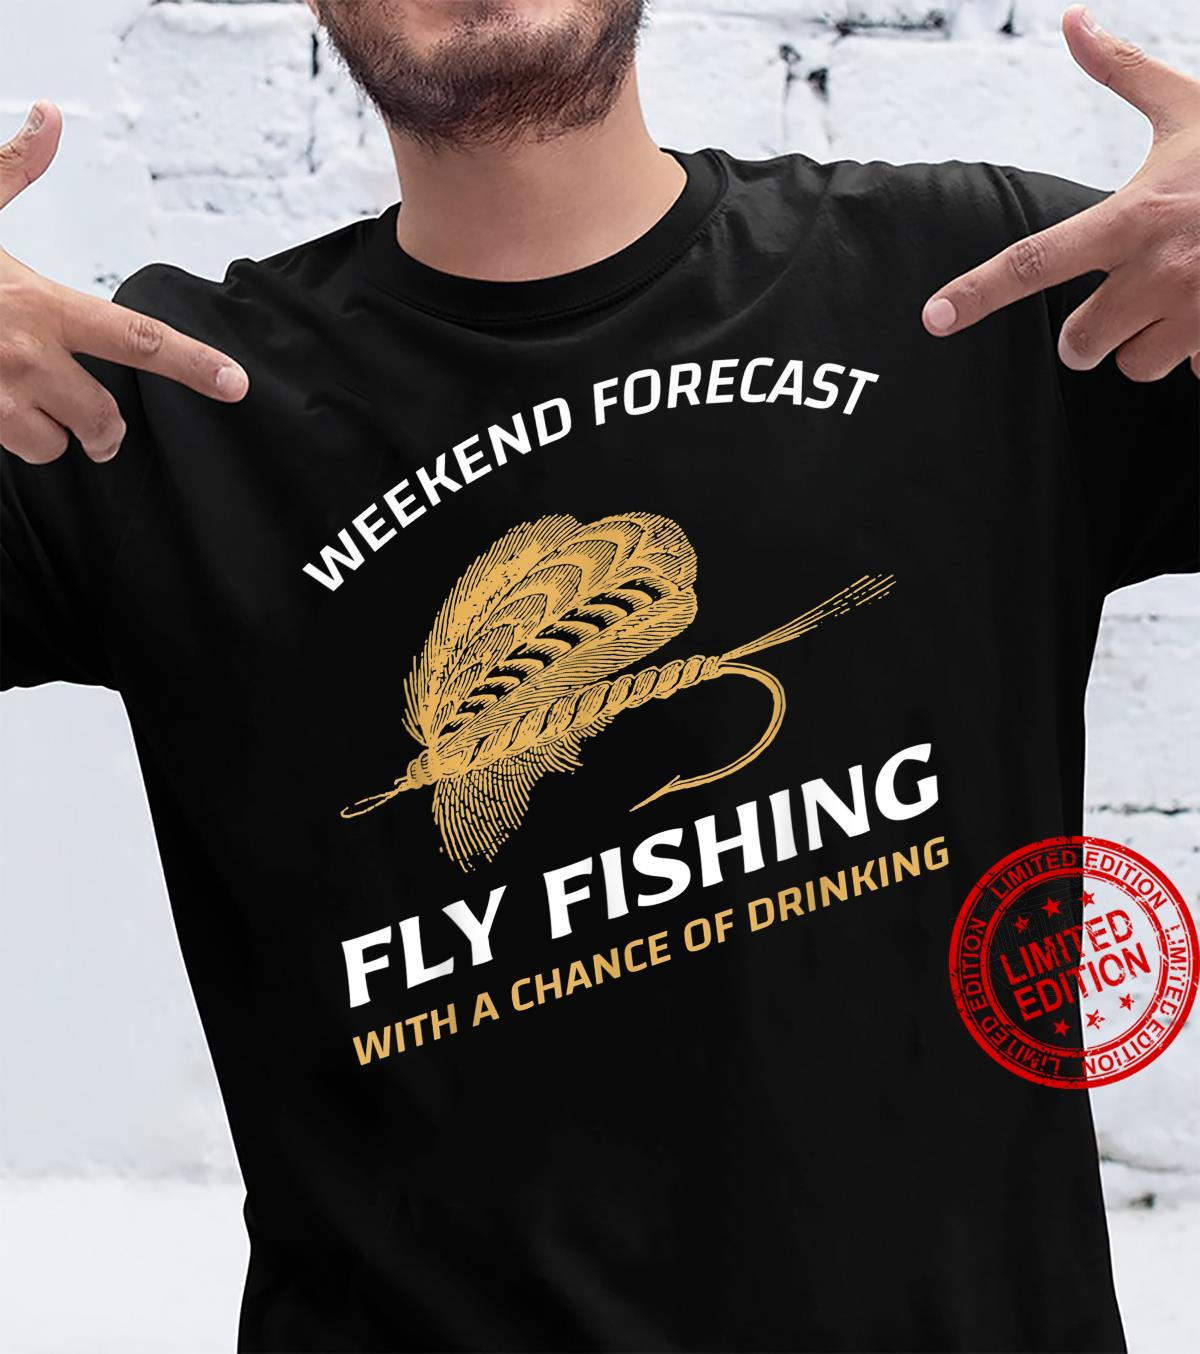 Weekend Forecast Fly Fishing With A Chance of Drinking Shirt